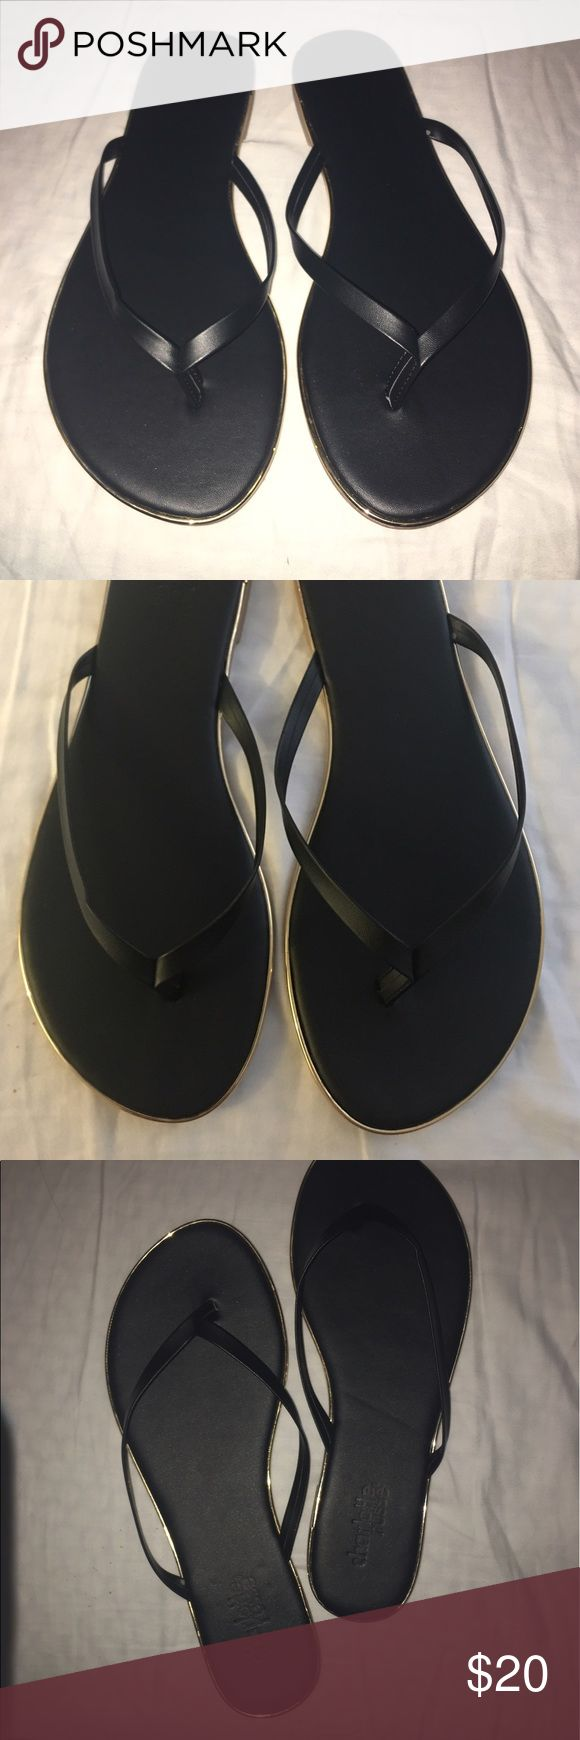 Classic Black Flip Flop Sandals Brand new with tags - Perfect classic sandals will go with everything in your closet!! Can be worn both casual and dressy. Has a gold trim all around back of sandal. This is a perfect flip flop you will wear over and over again. Charlotte Russe Shoes Sandals